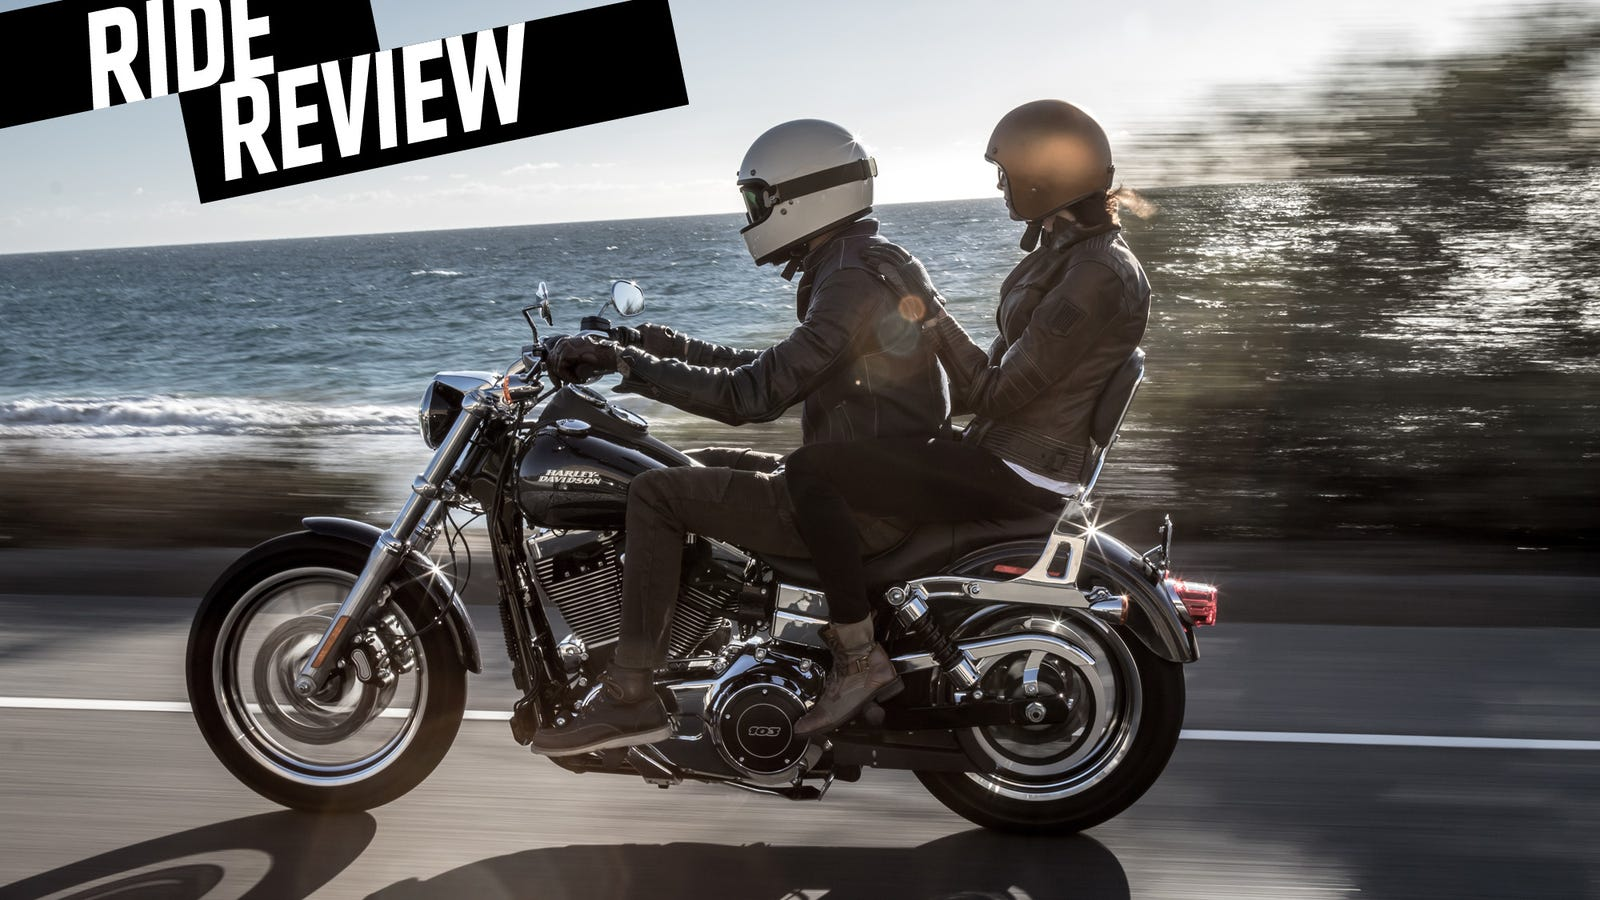 Ride Review The Harley Davidson Dyna Low Rider Helped Me